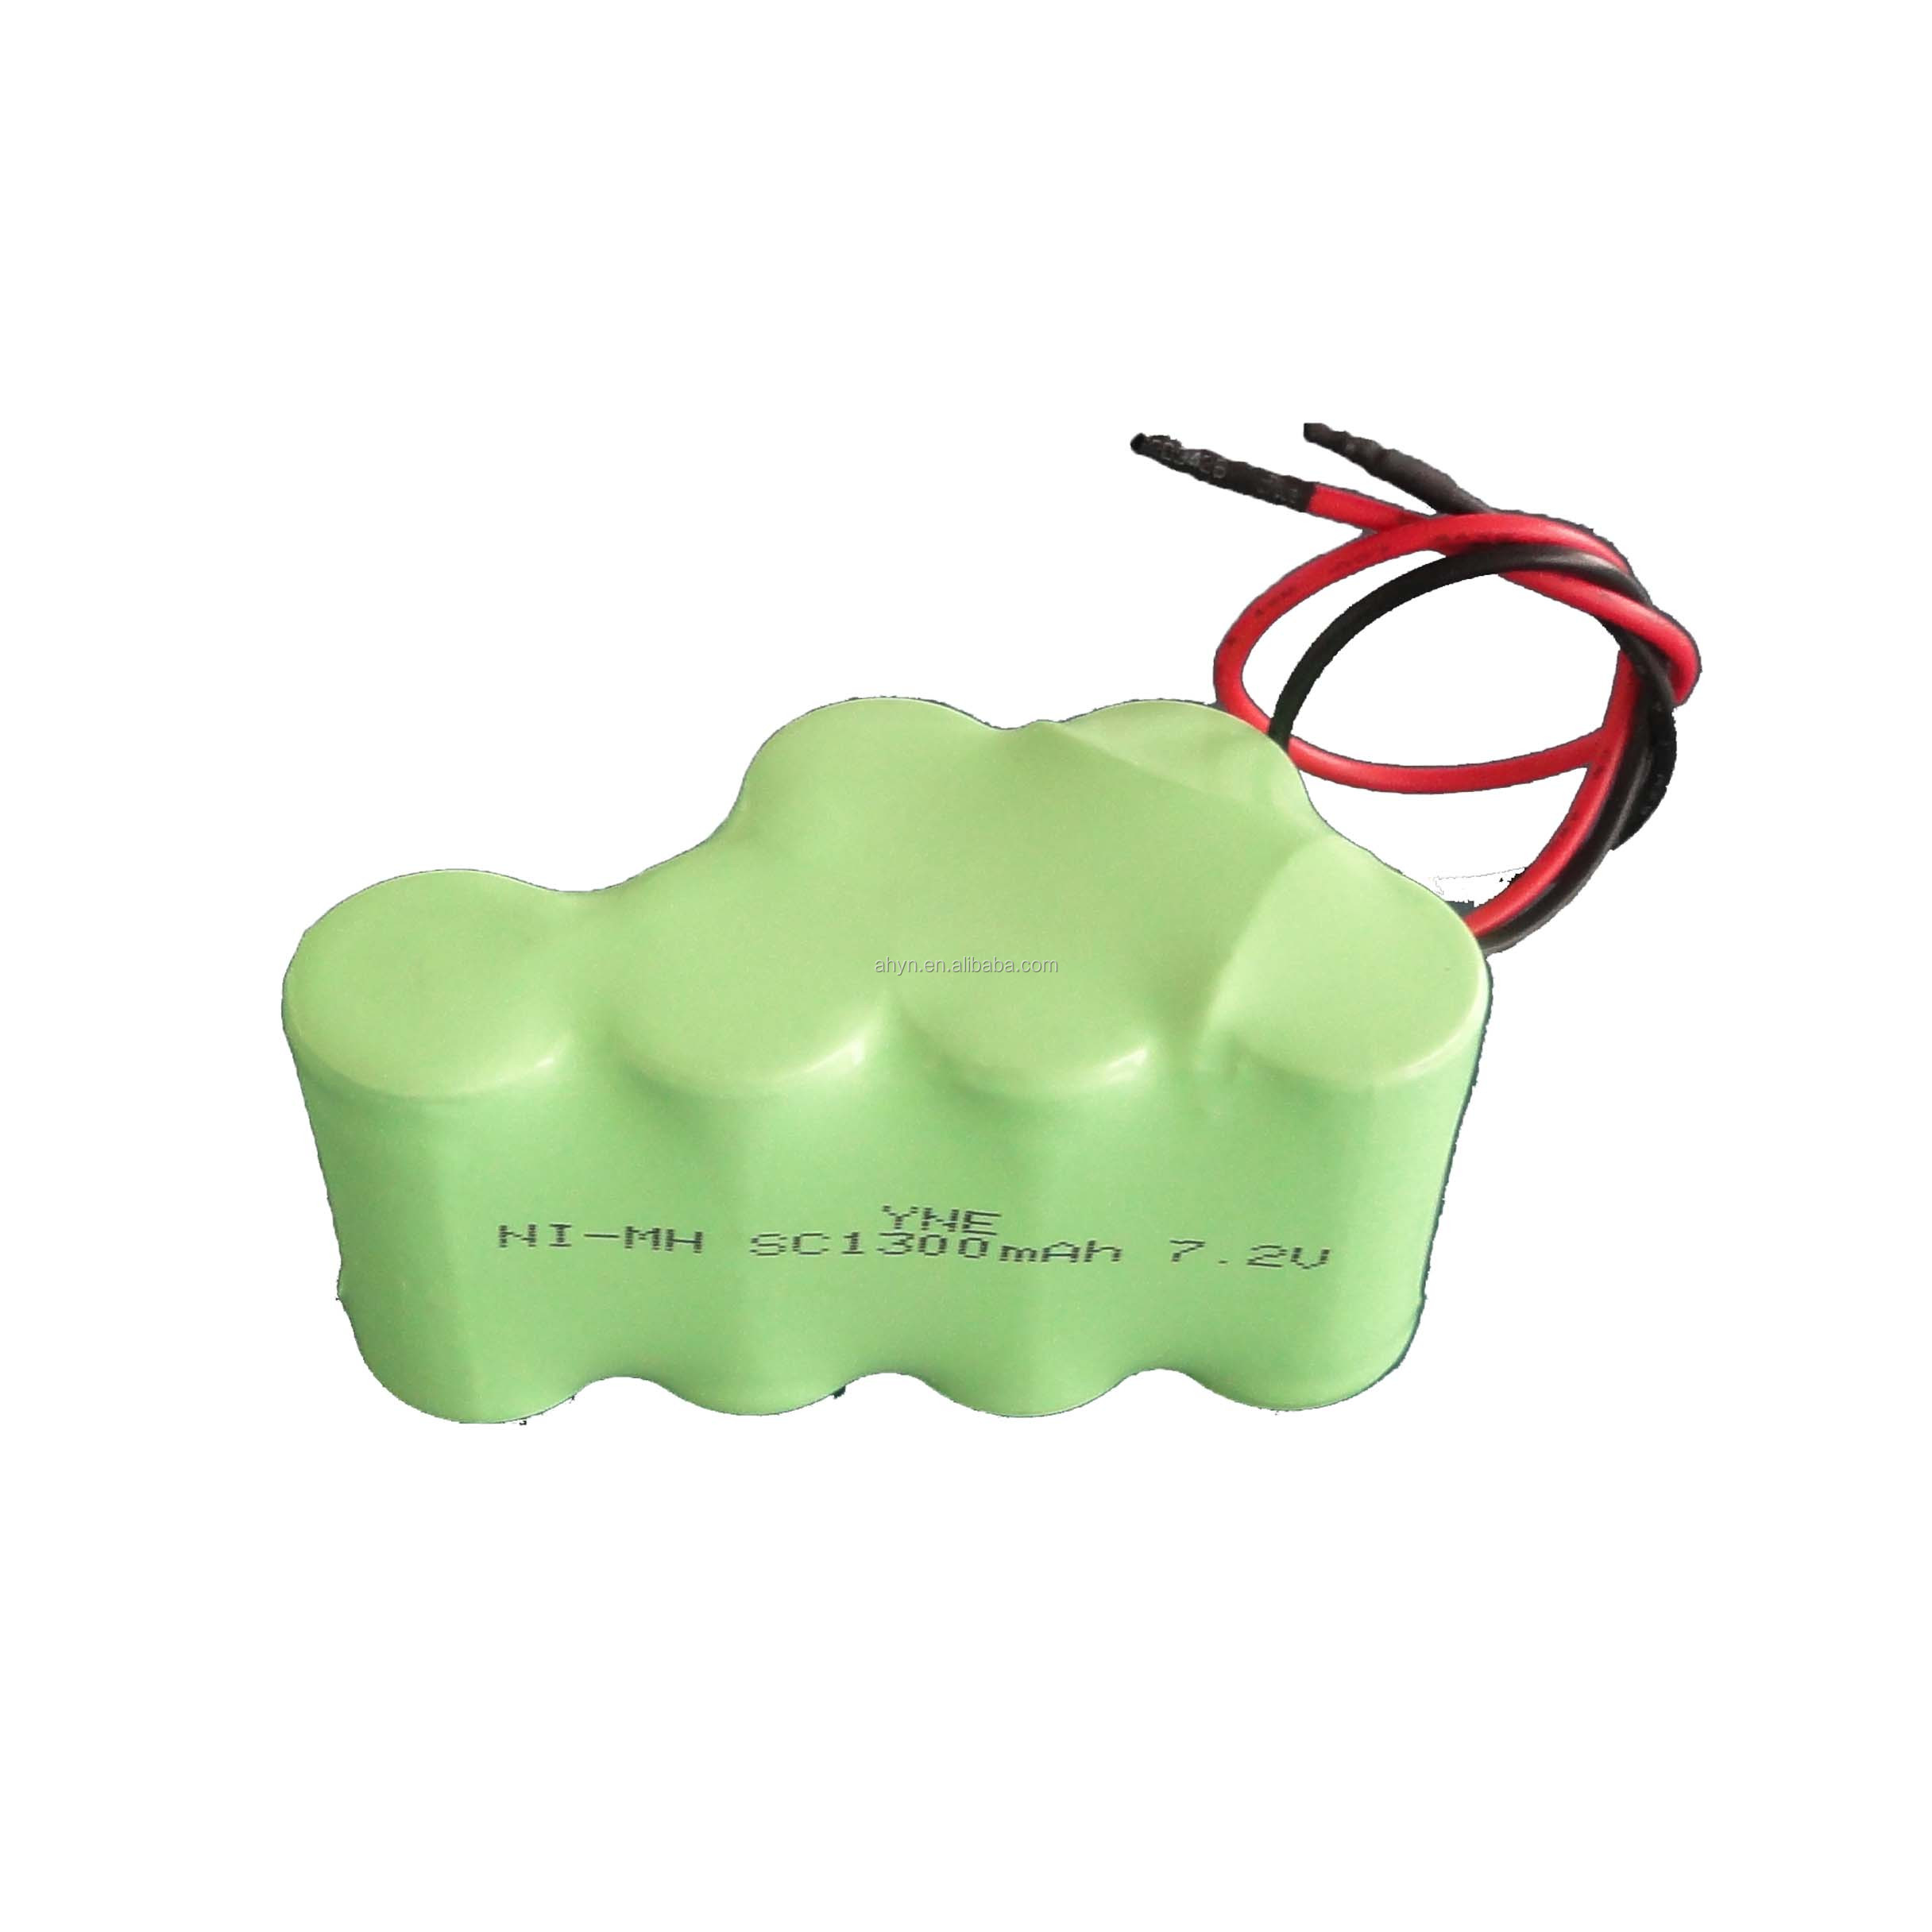 cheap high capacity rechargeable C1300mah 7.2V nimh battery for Vending machine ,toys,lights,flashlight,emergency power supply